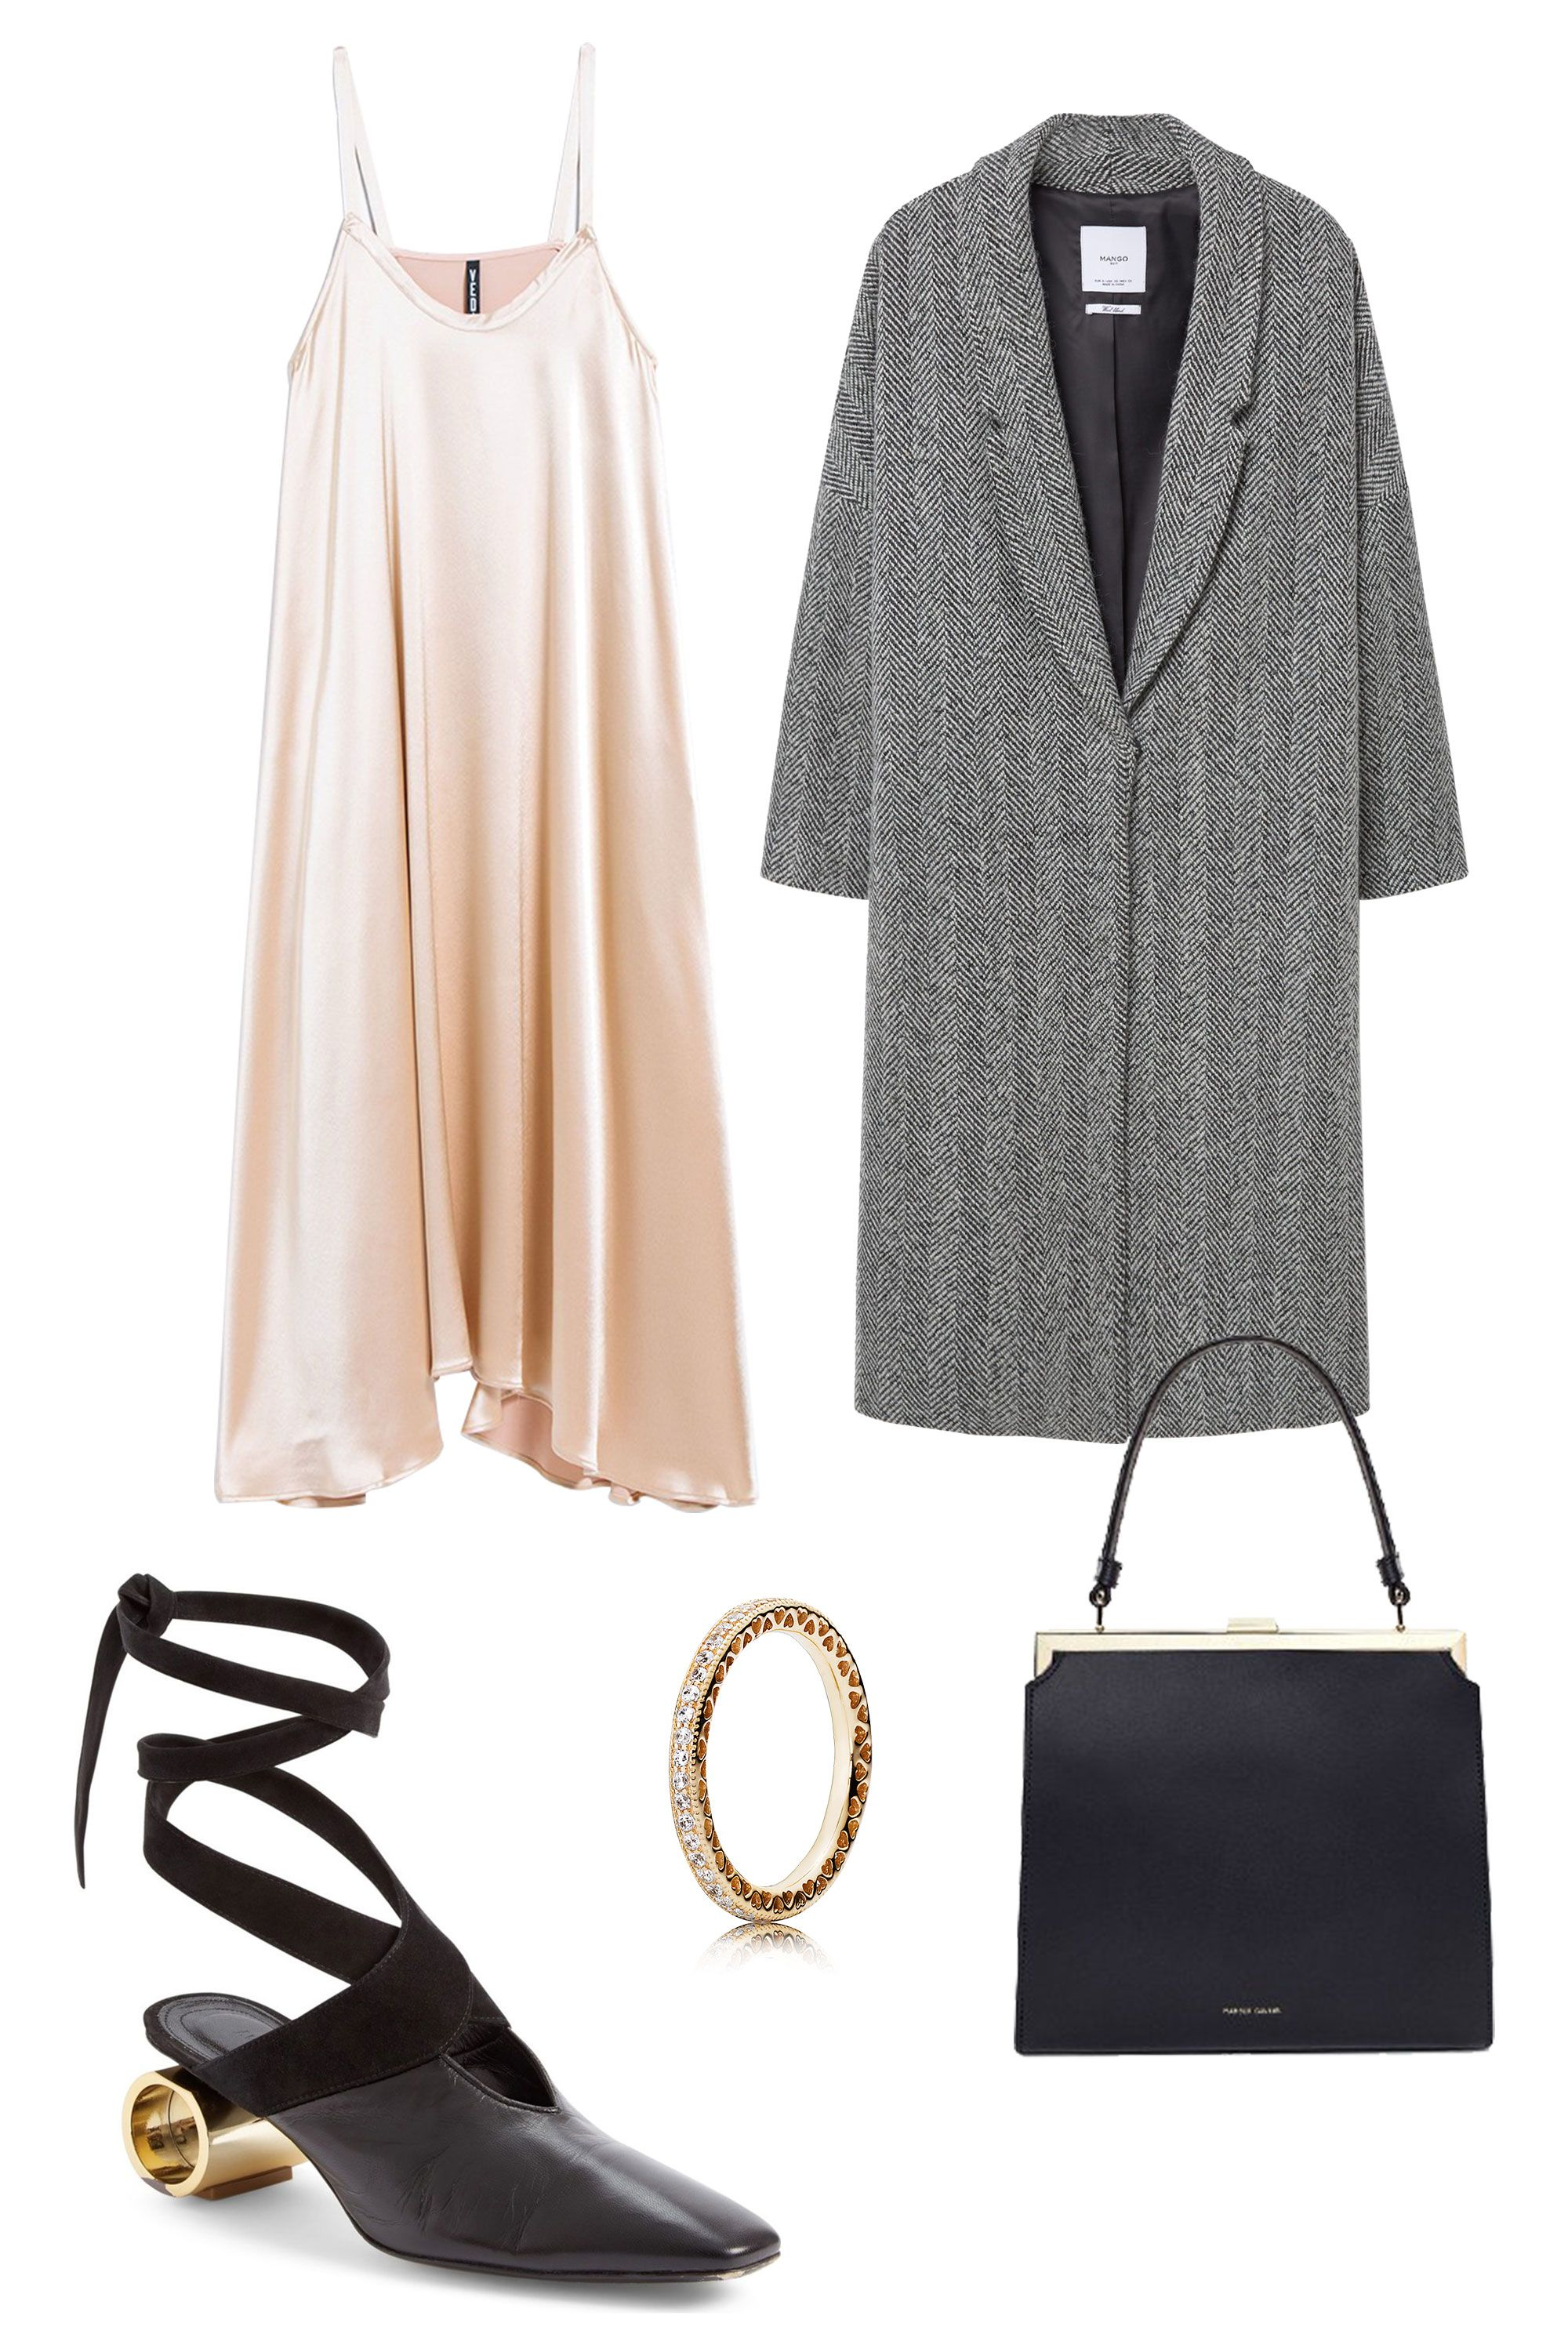 <p>When you've got a table booked at the hottest restaurant in town, go for simple but sexy in a slinky slip dress. Add a pair of killer heels and an oversize coat and we guarantee you'll spark a little PDA.